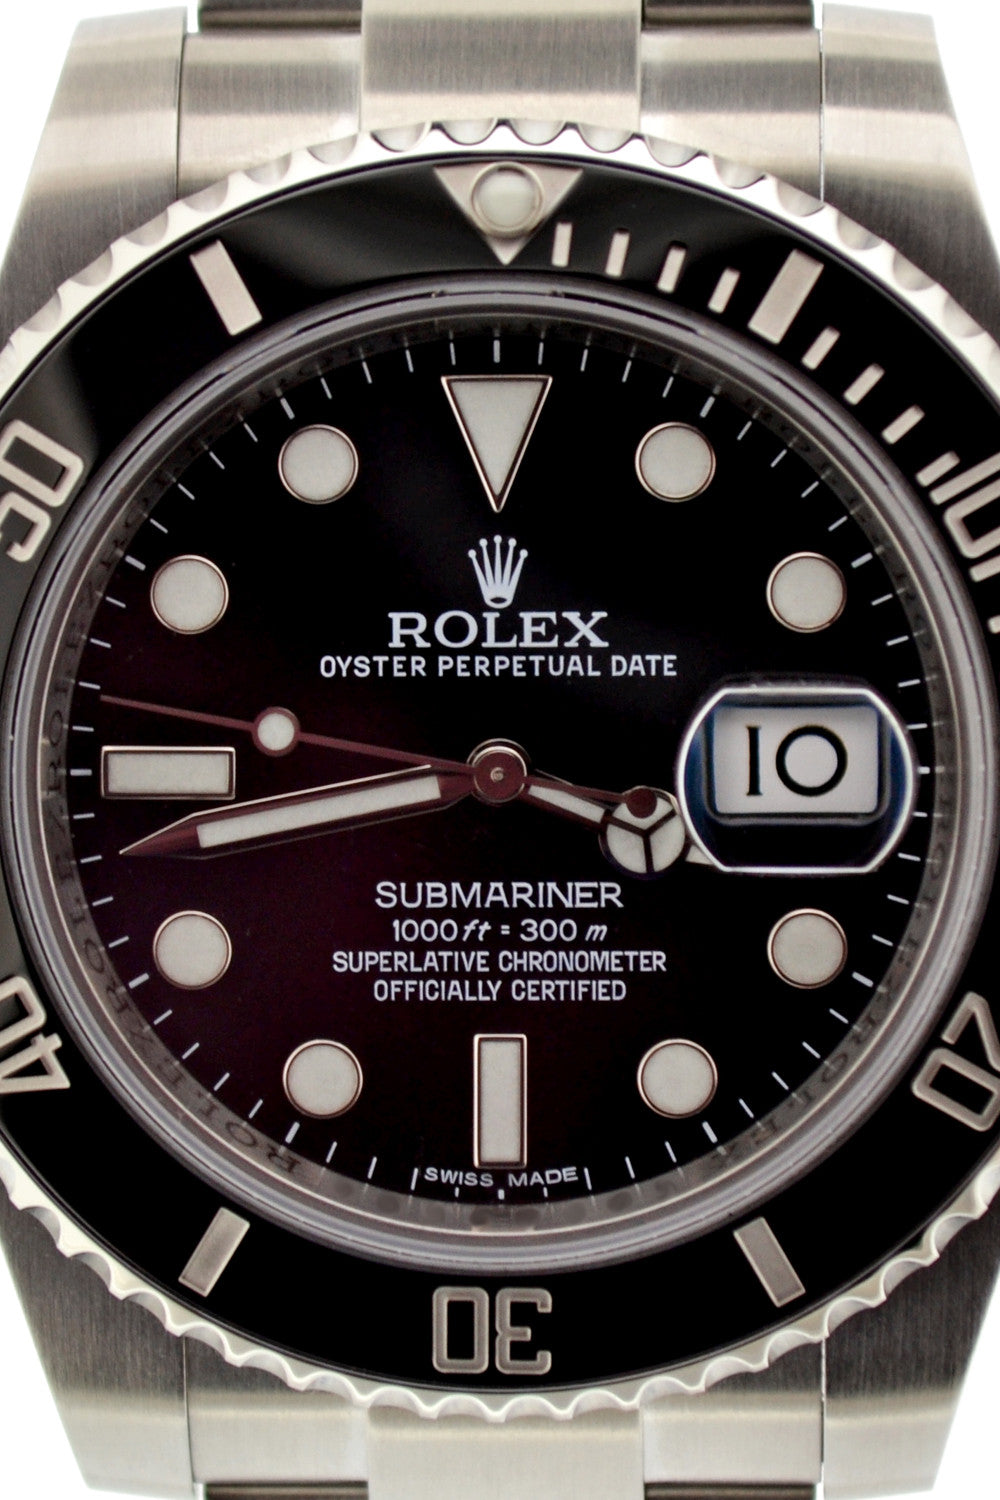 ROLEX Submariner Oyster Perpetual Automatic Watch